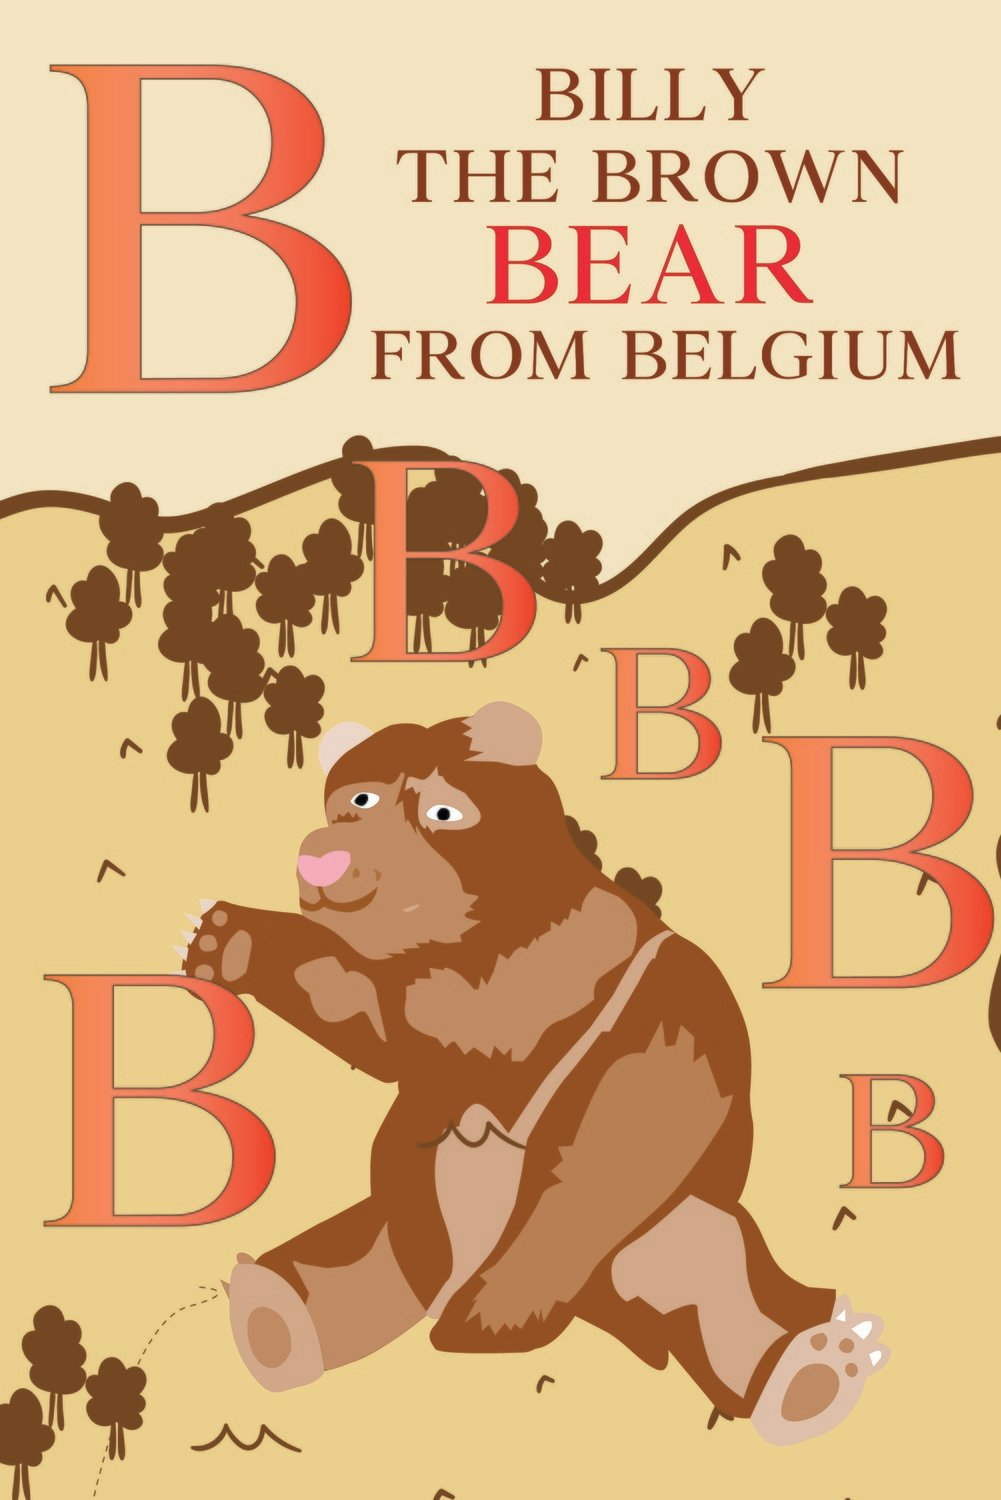 Billy The BROWN BEAR From BELGIUM Poster